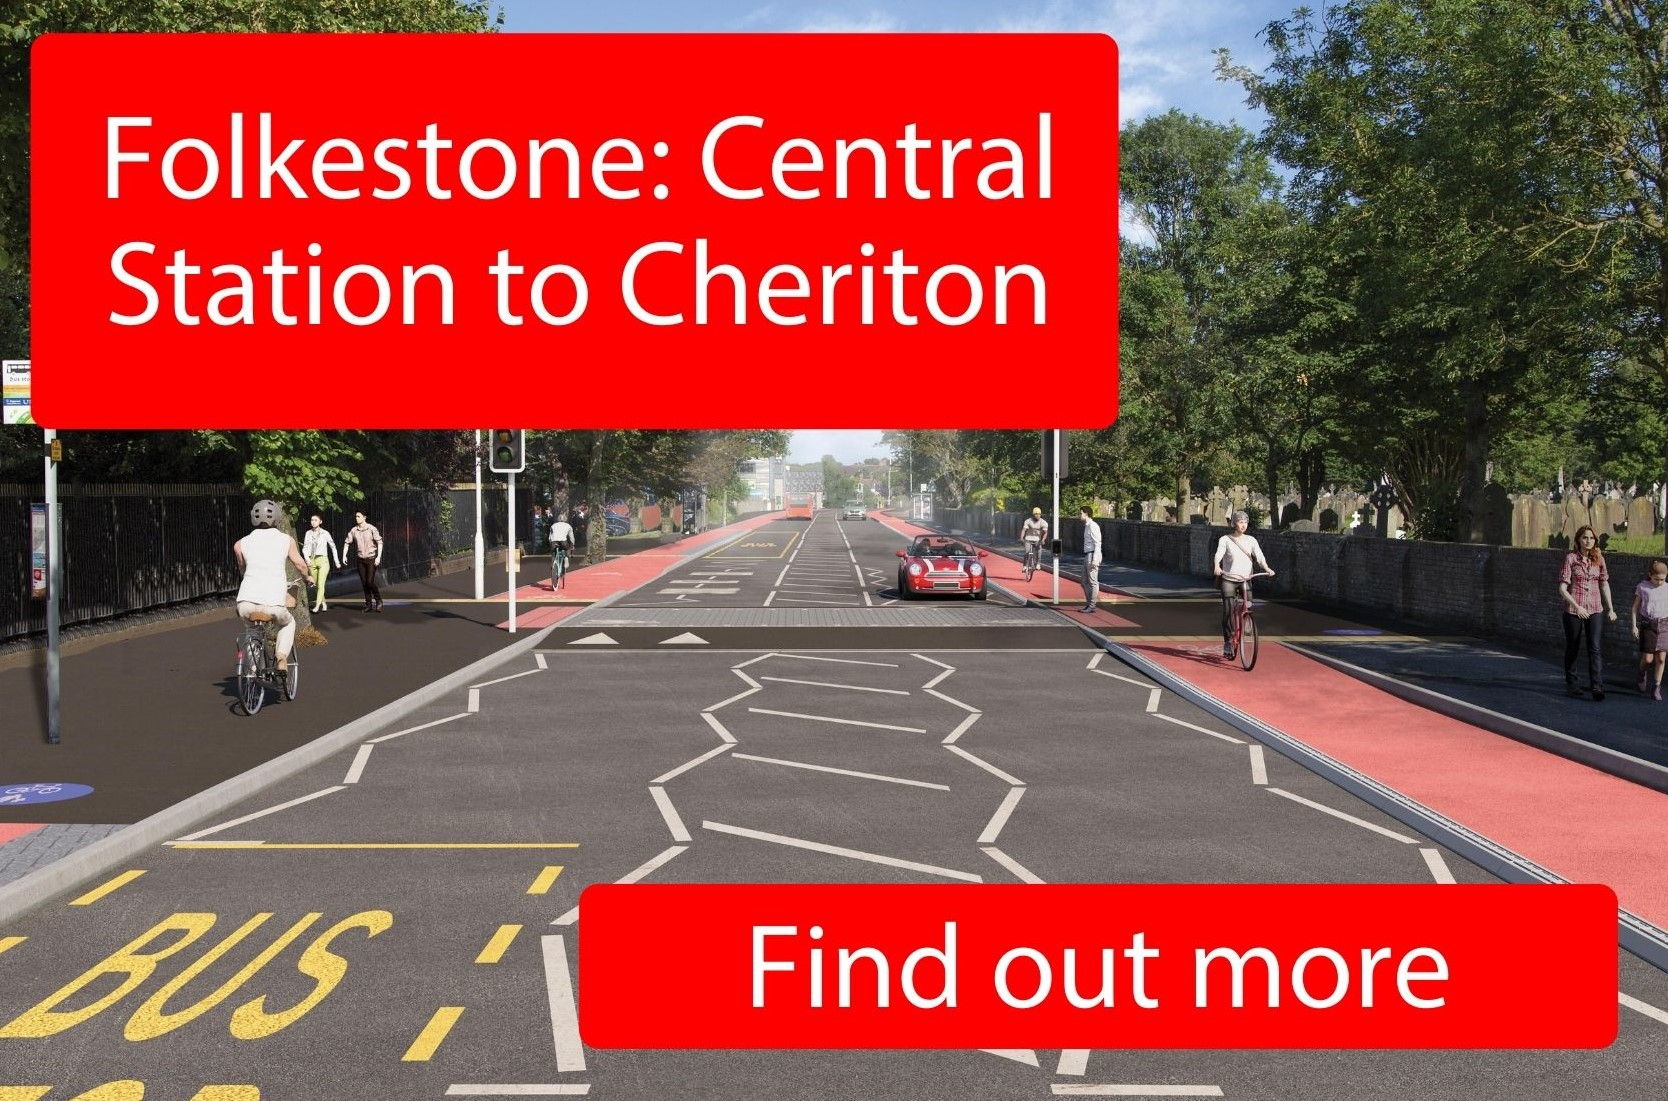 Folkestone: Central Station to Cheriton - click here to find out more.